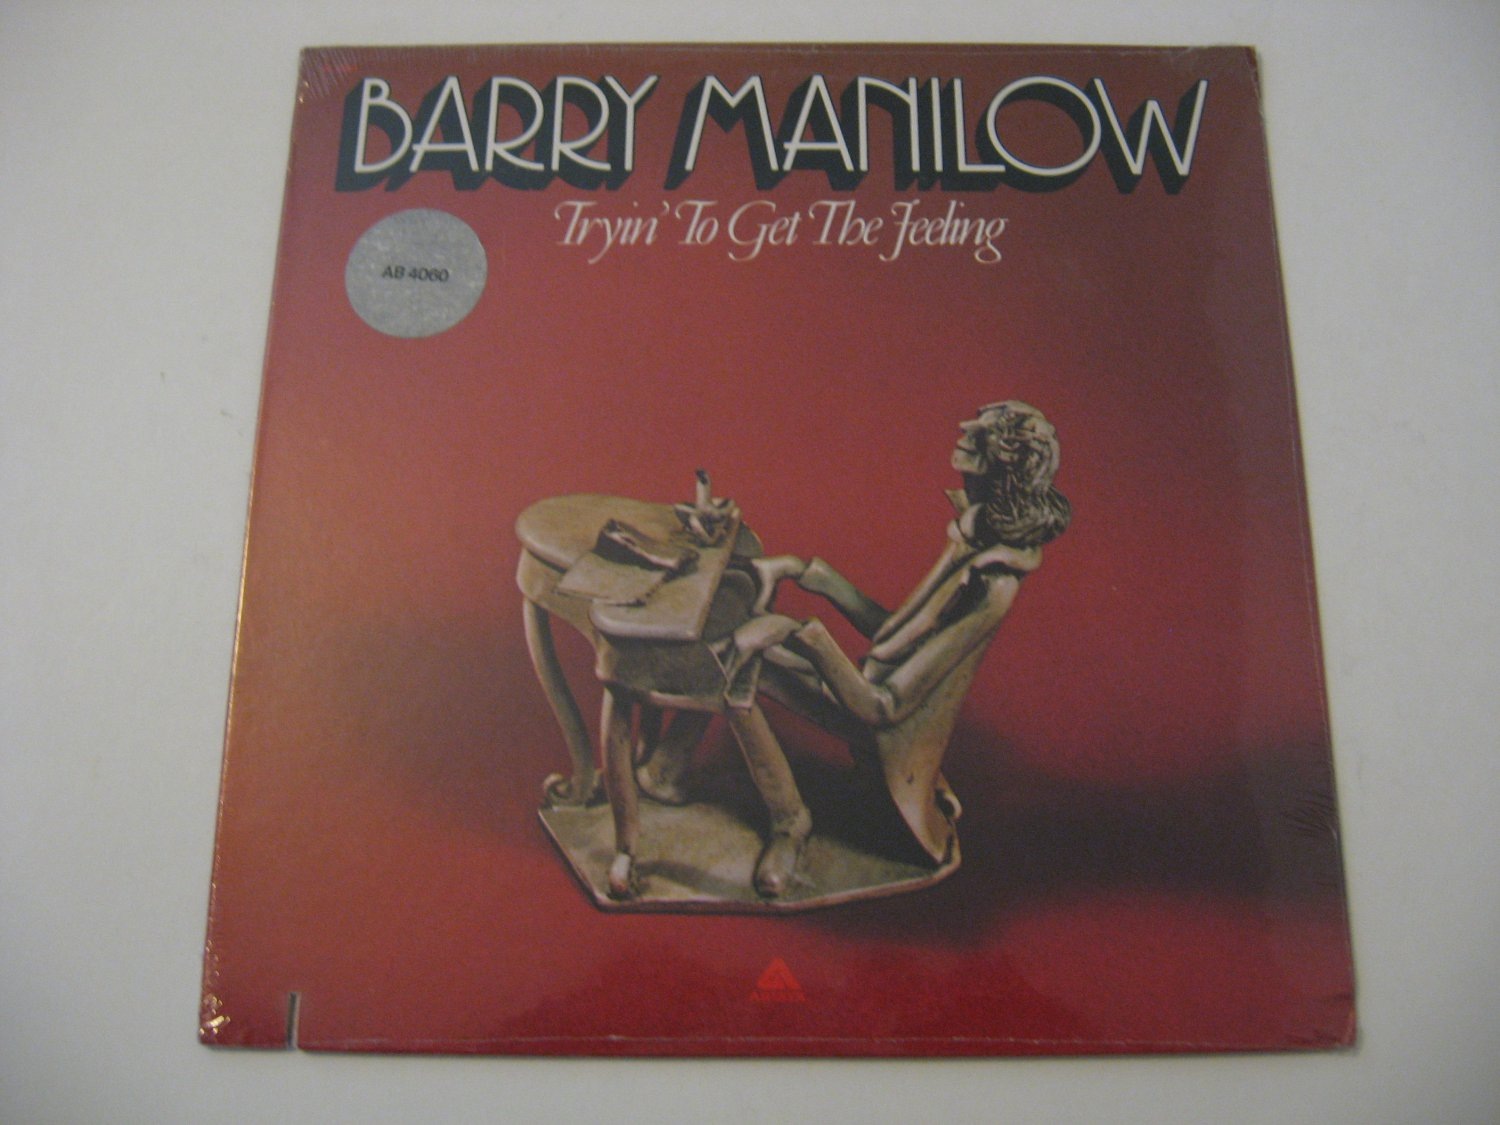 NEW! - Factory Sealed! - Barry Manilow - Tryin To Get The Feeling - Circa 1975